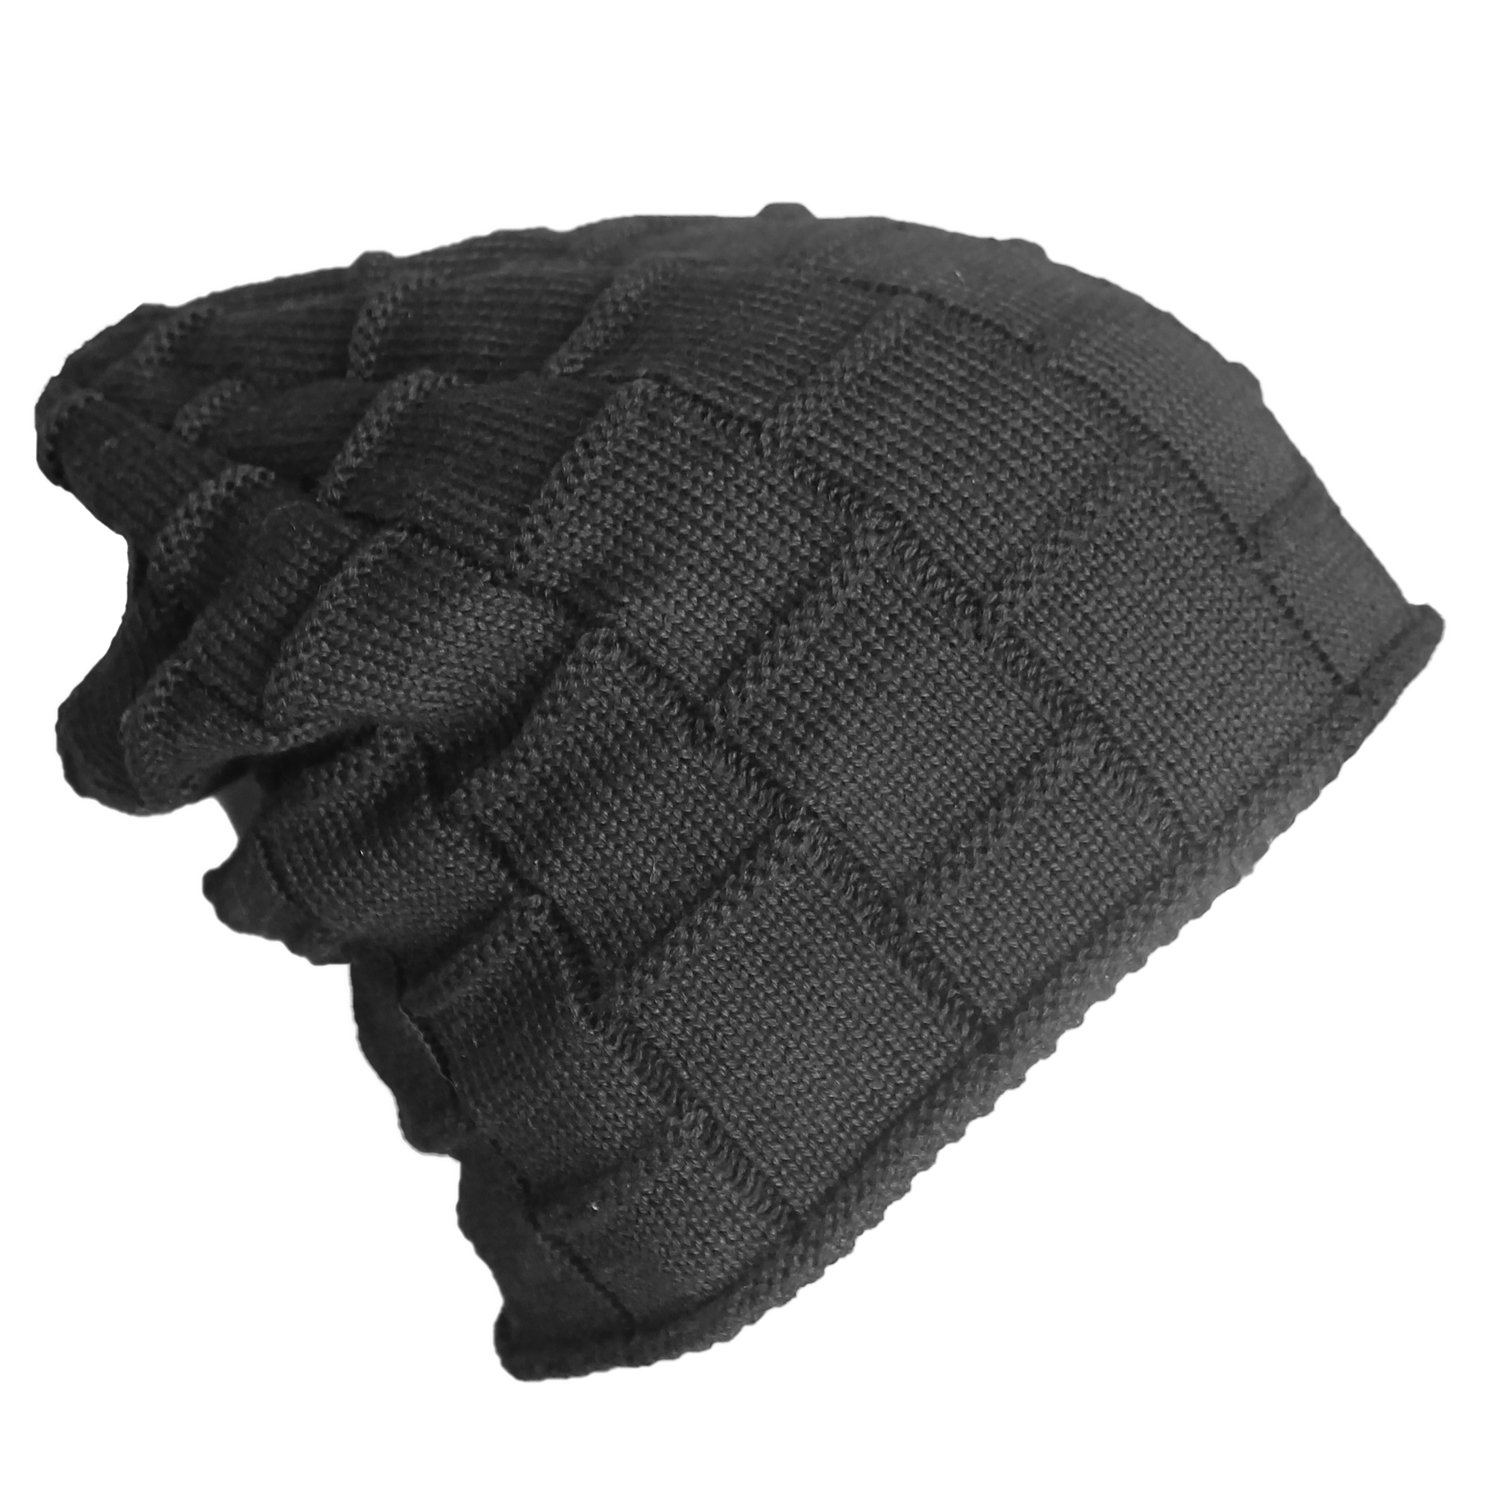 Bodvera Unisex Winter Knit Wool Warm Hat Soft Slouchy Beanie Skully Cap in 3 color, One Size, Black by Bodvera (Image #4)